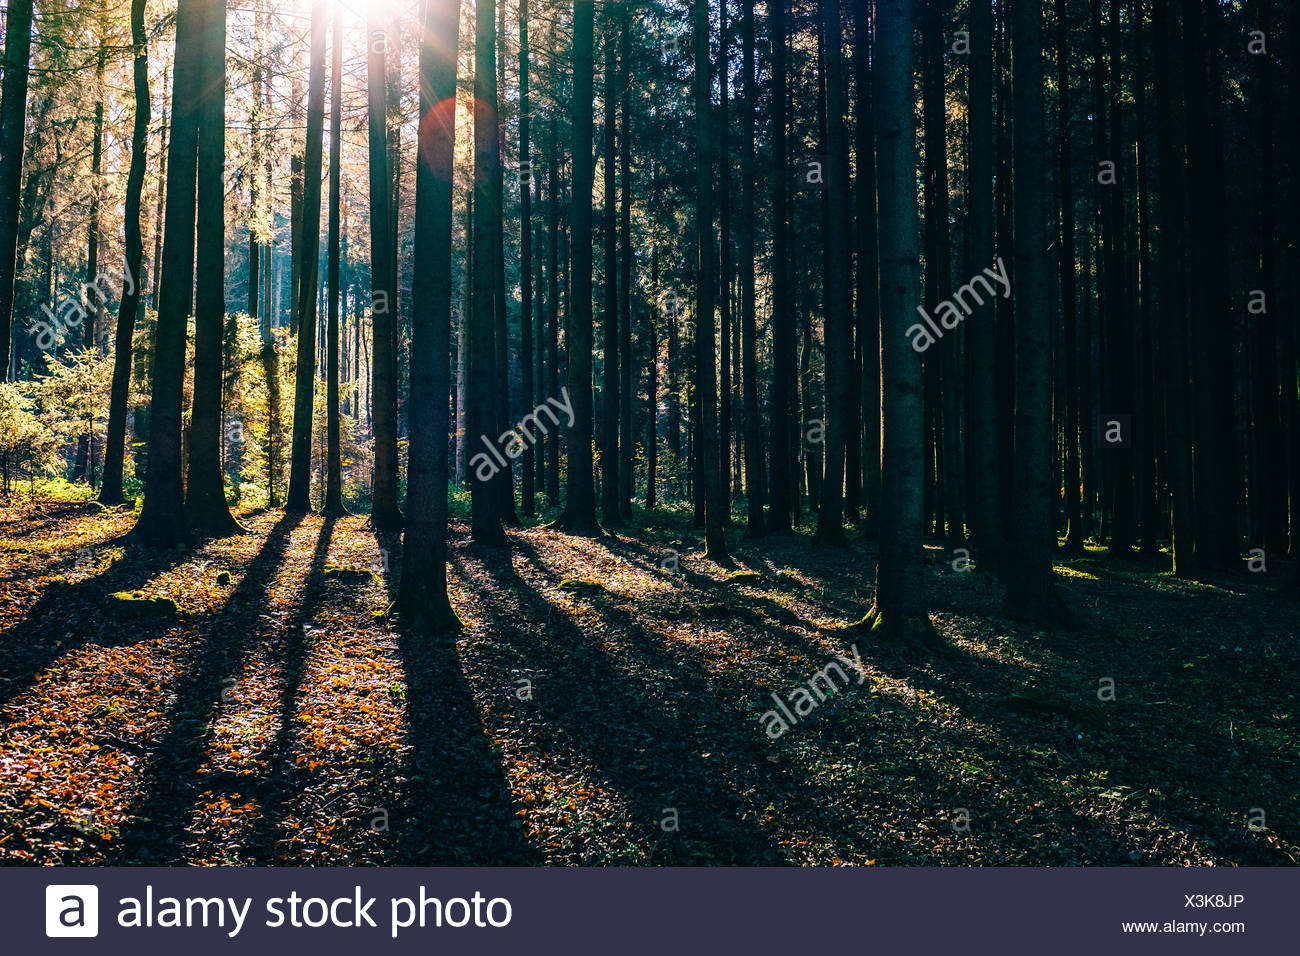 Trees Growing In Forest - Stock Image